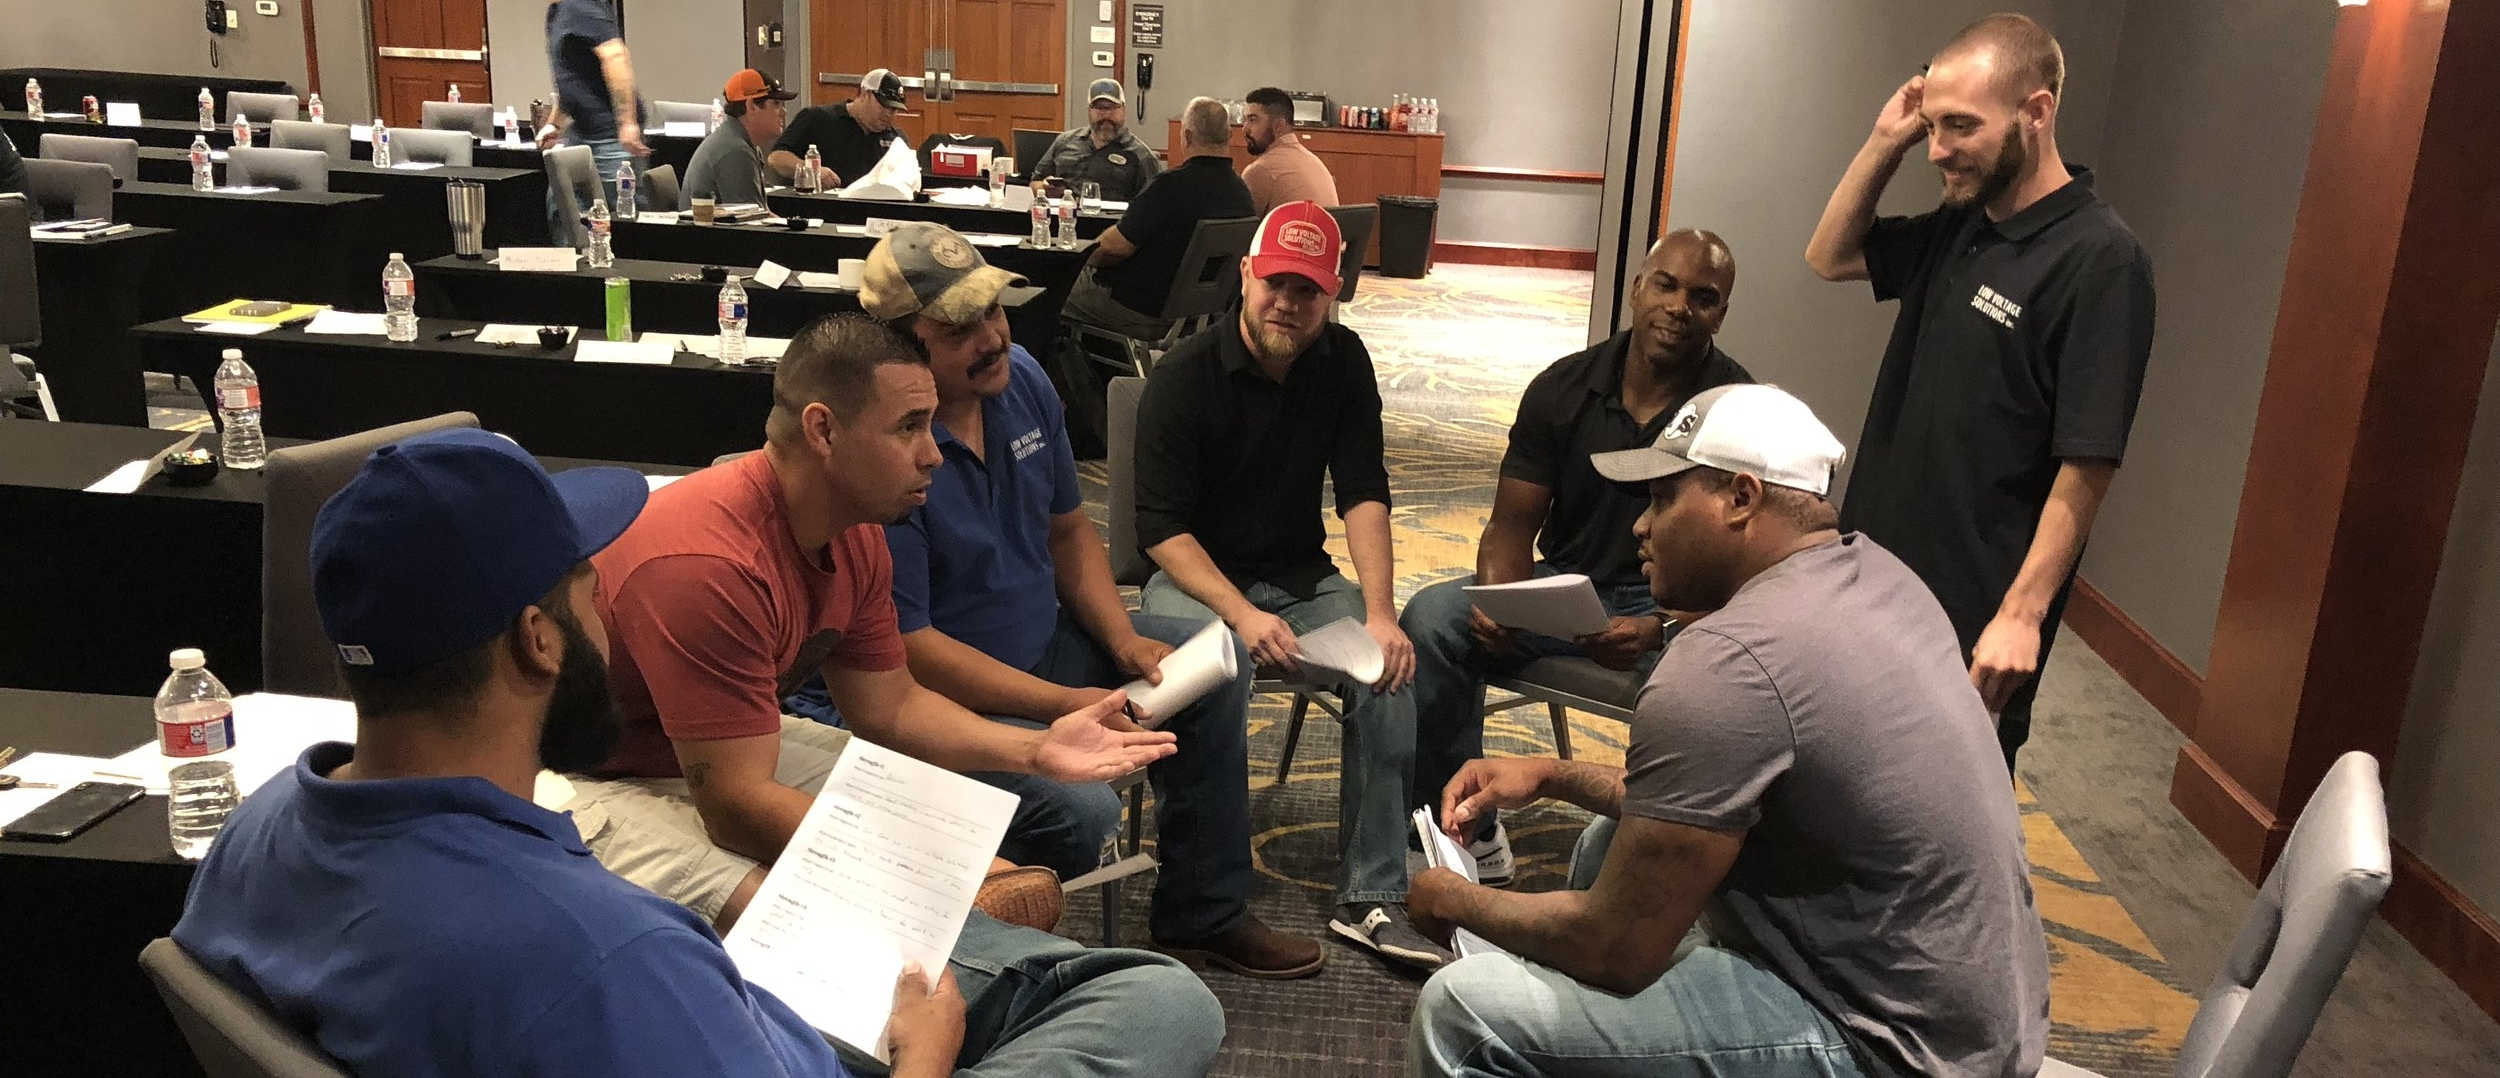 Low Voltage Solutions employees discuss their leadership training in a conference room.